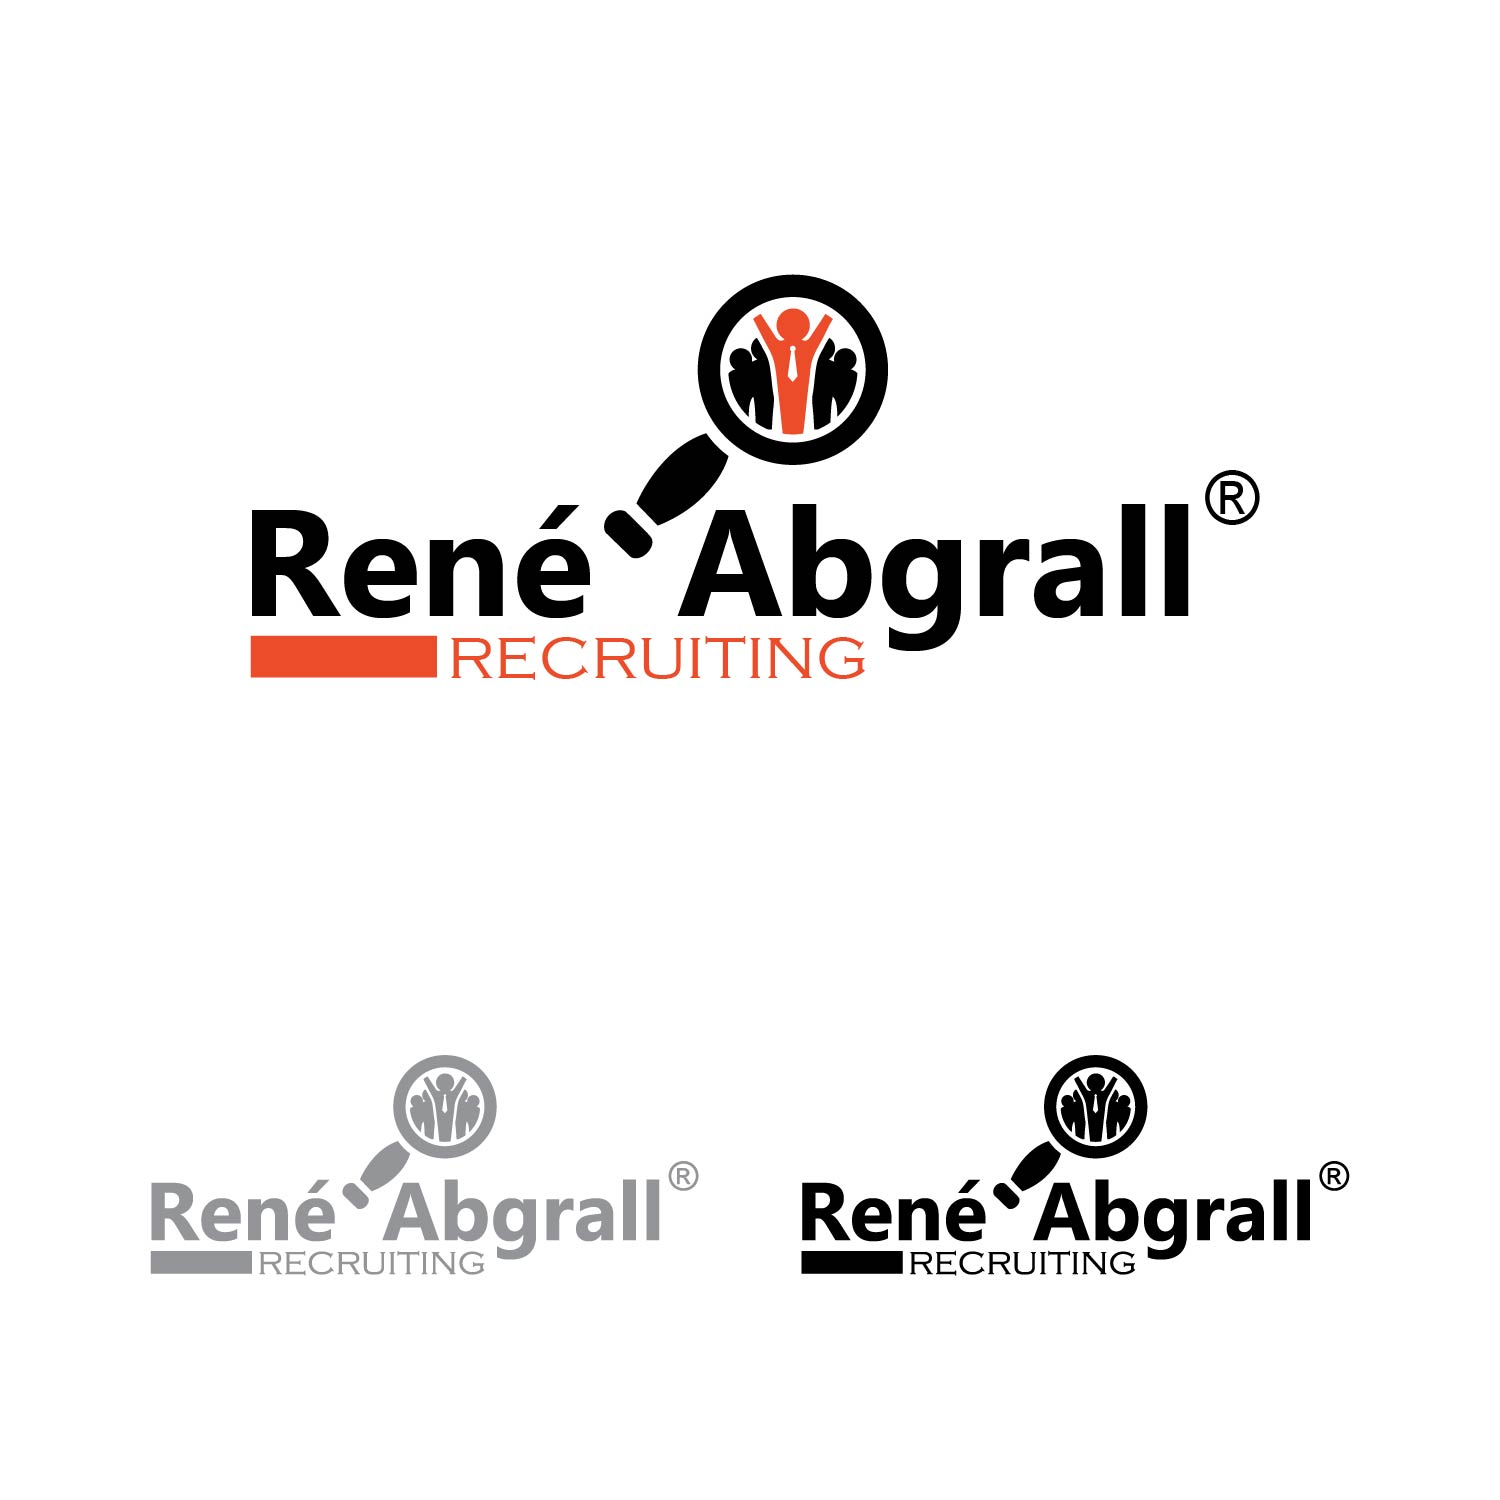 Logo Design by lagalag - Entry No. 4 in the Logo Design Contest Artistic Logo Design for René Abgrall Recruiting.